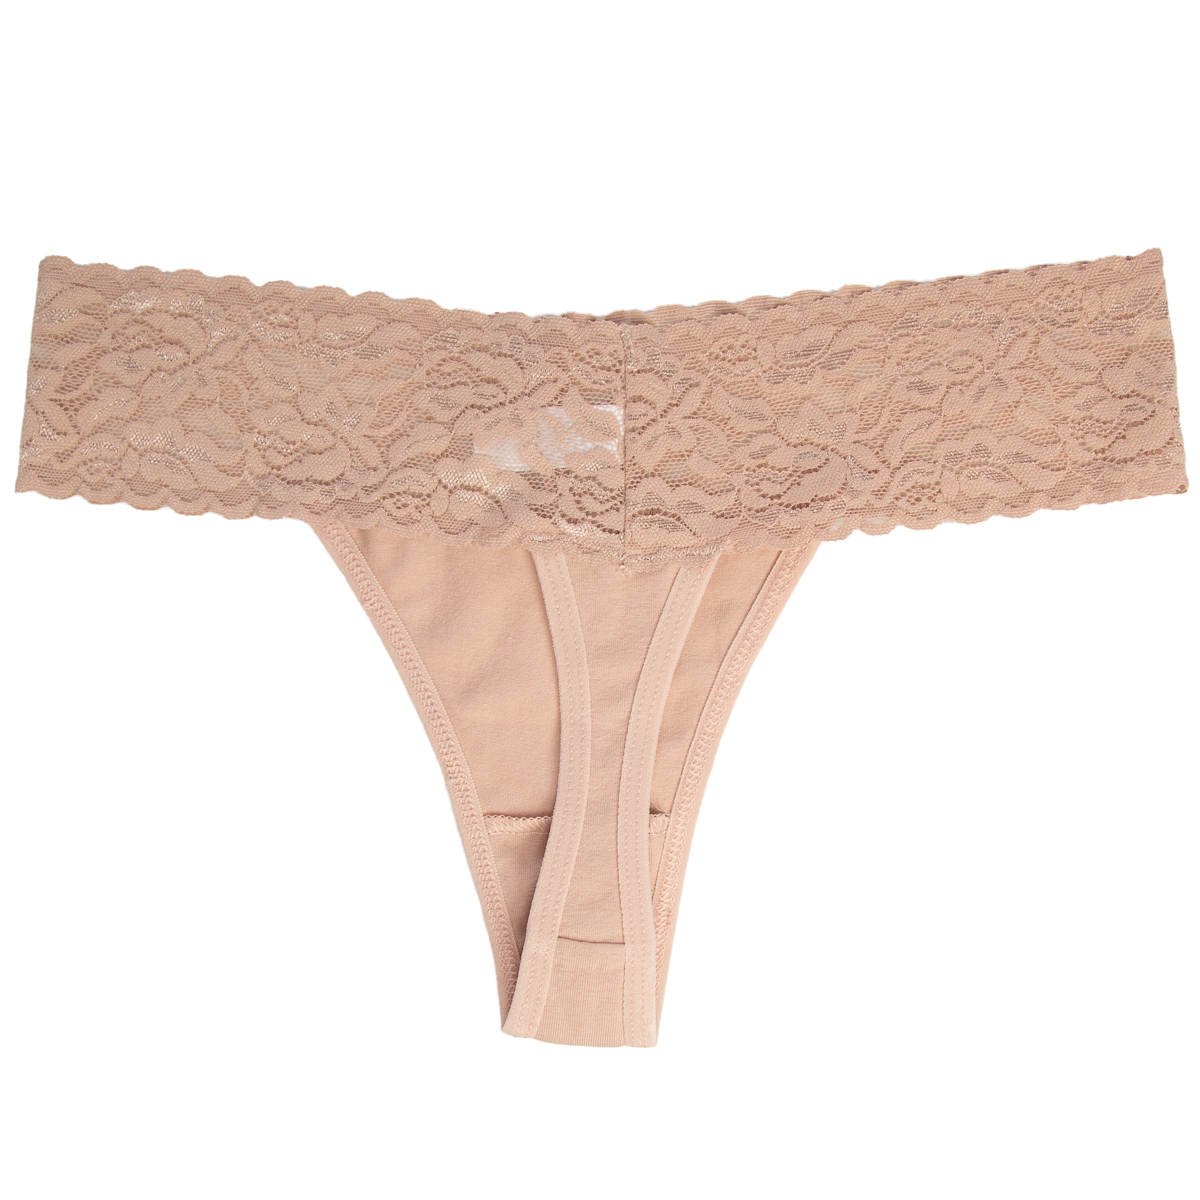 6-Pack-Cotton-Lace-Thong-Underwear-For-Women-Soft-Sexy-Lingerie-Panties-Thongs thumbnail 29